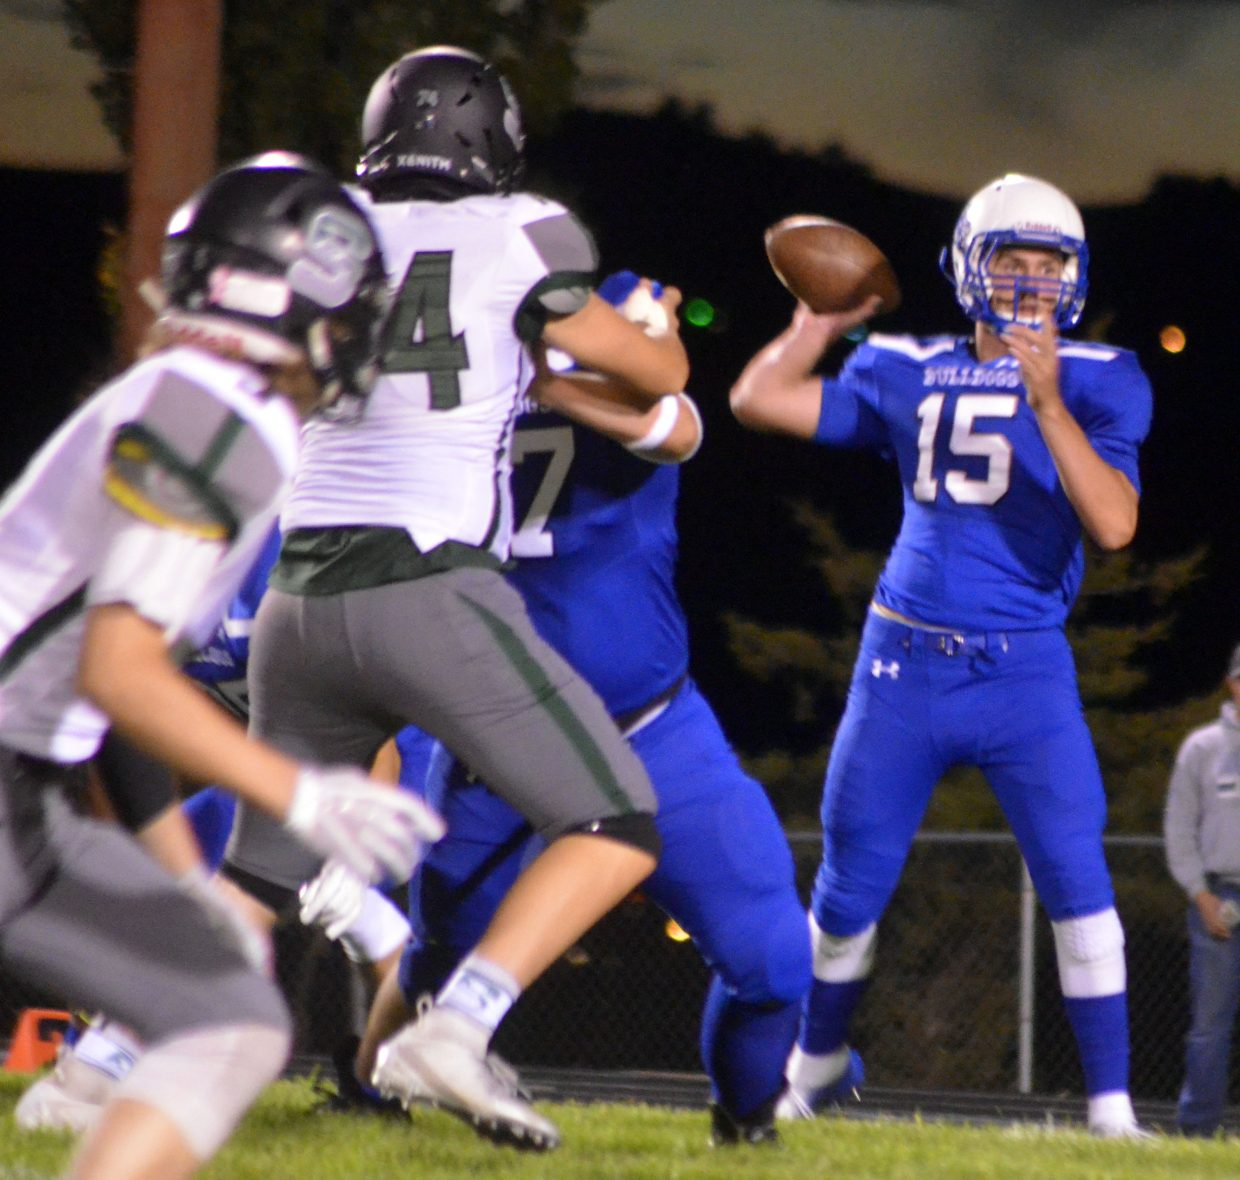 Moffat County High School's Colby Beaver rocks back for a pass.